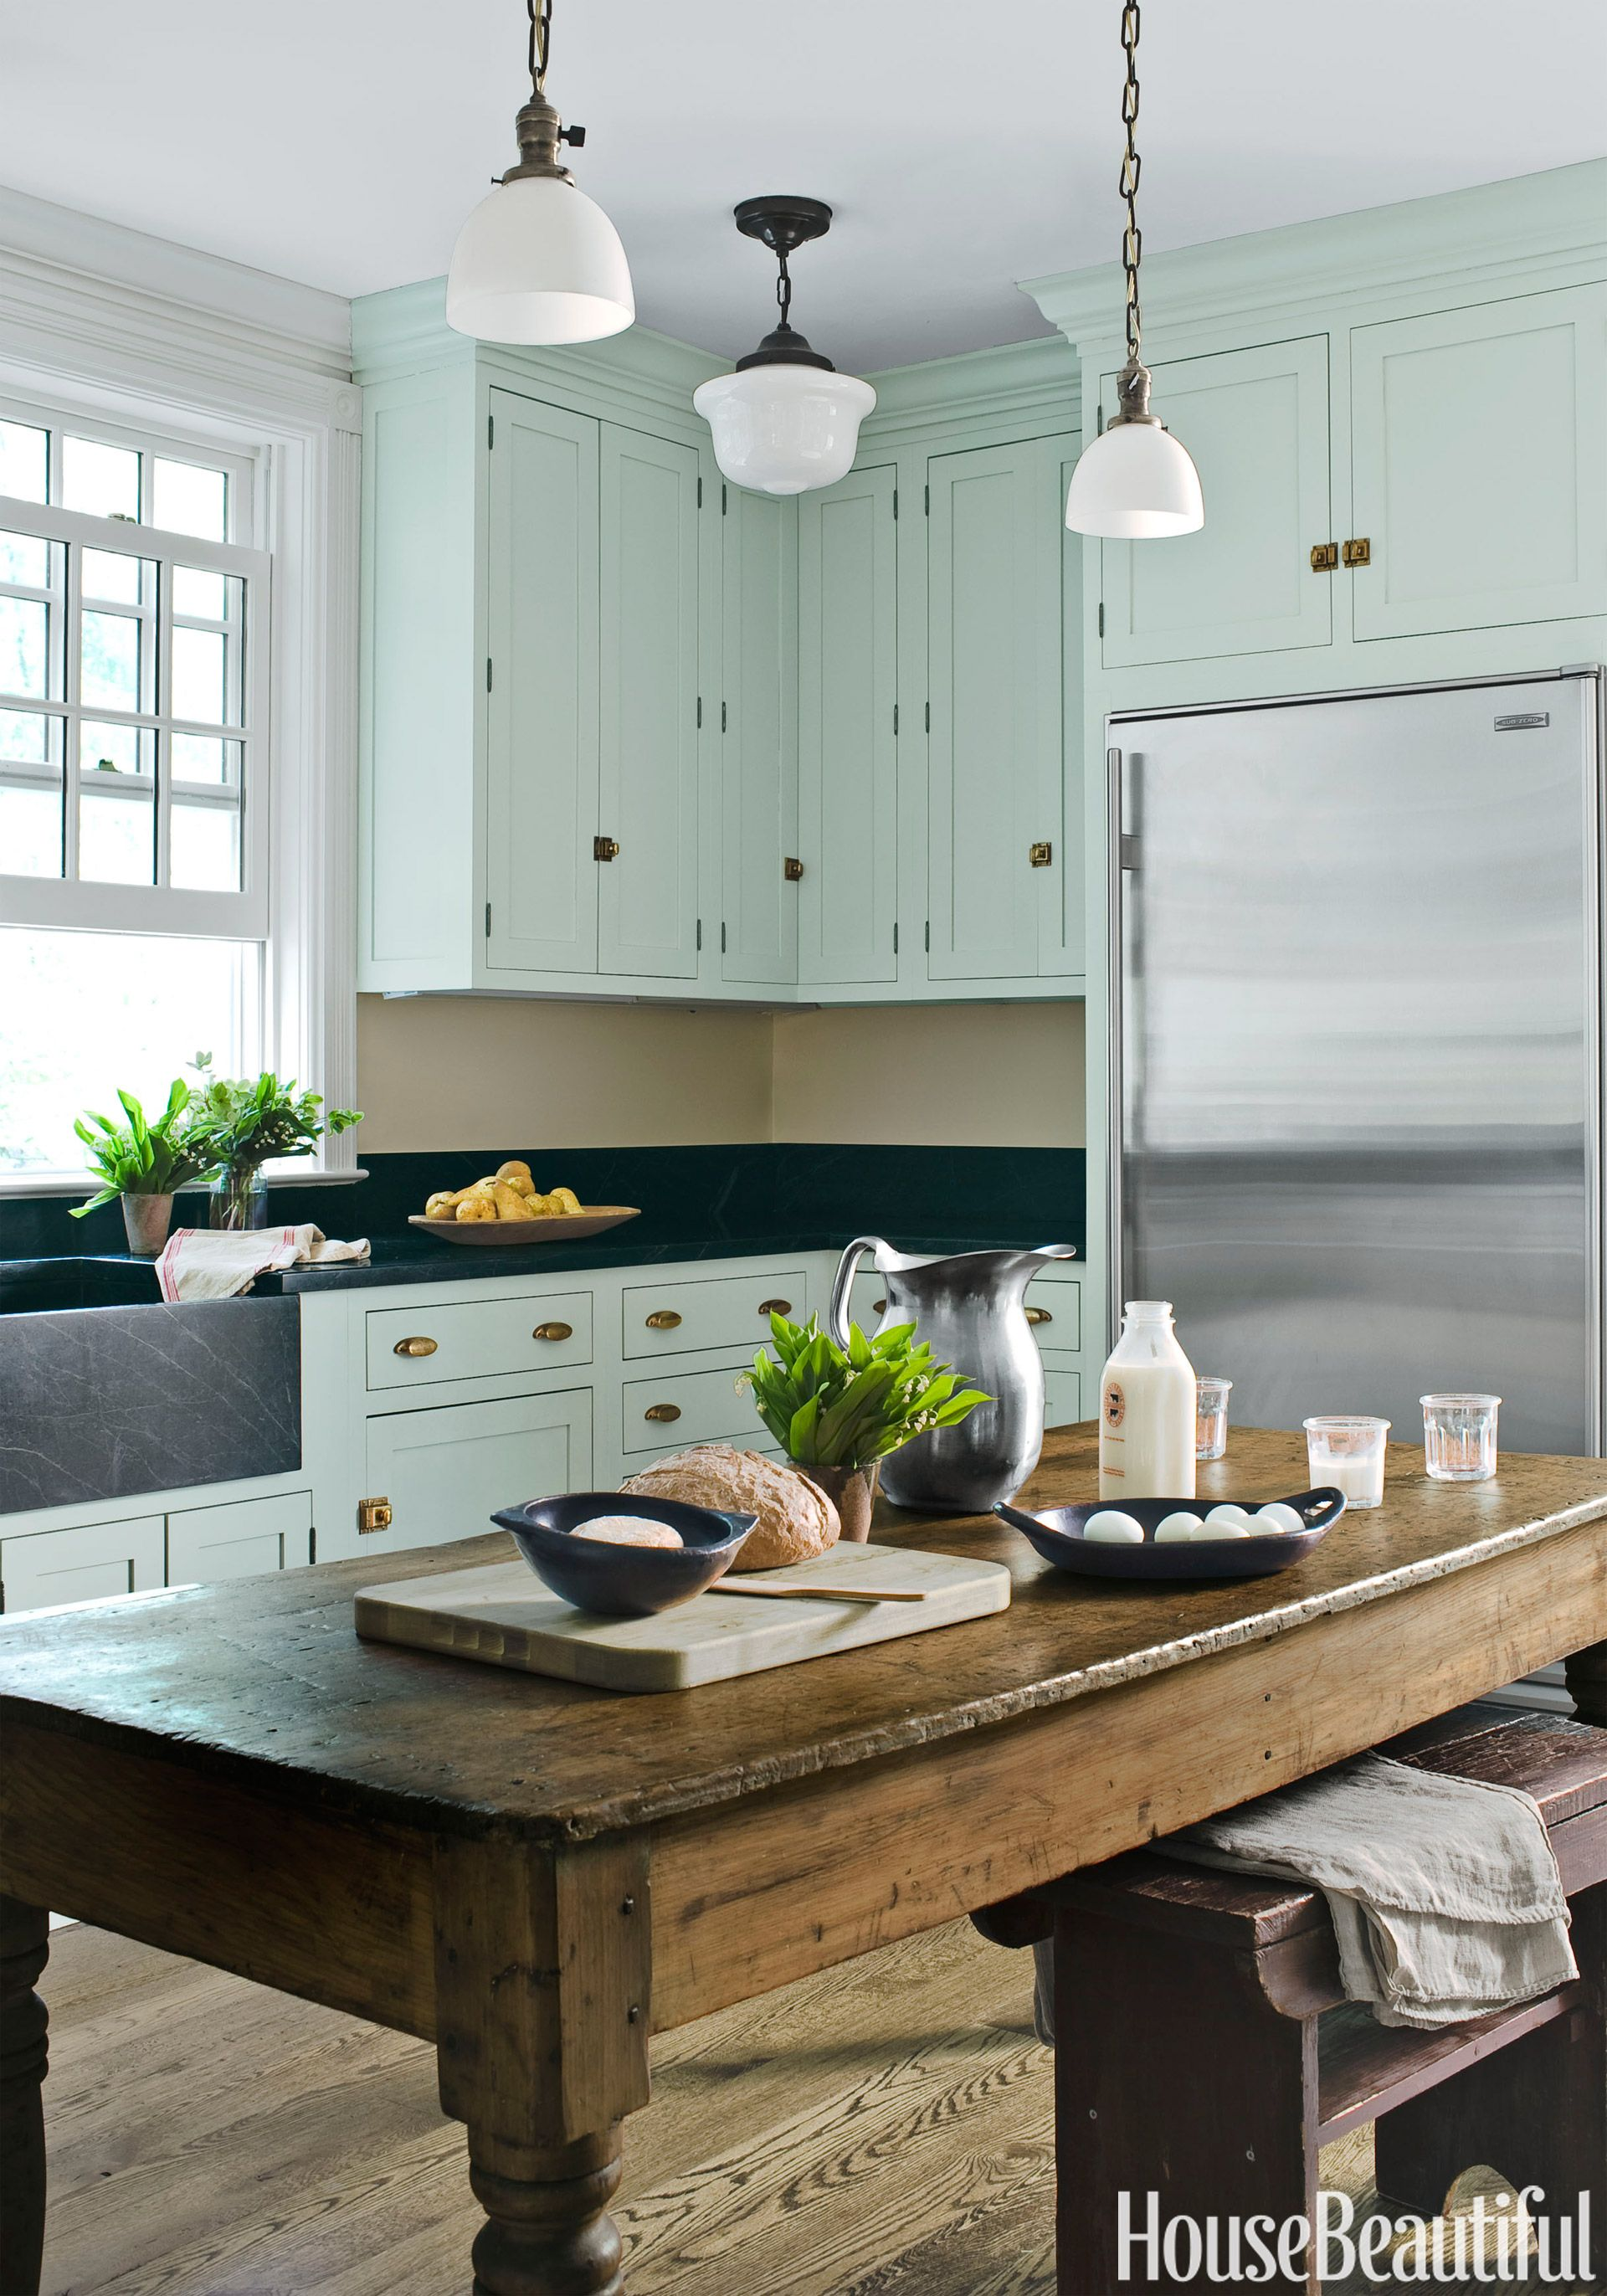 15 Kitchen Decorating Ideas Pictures